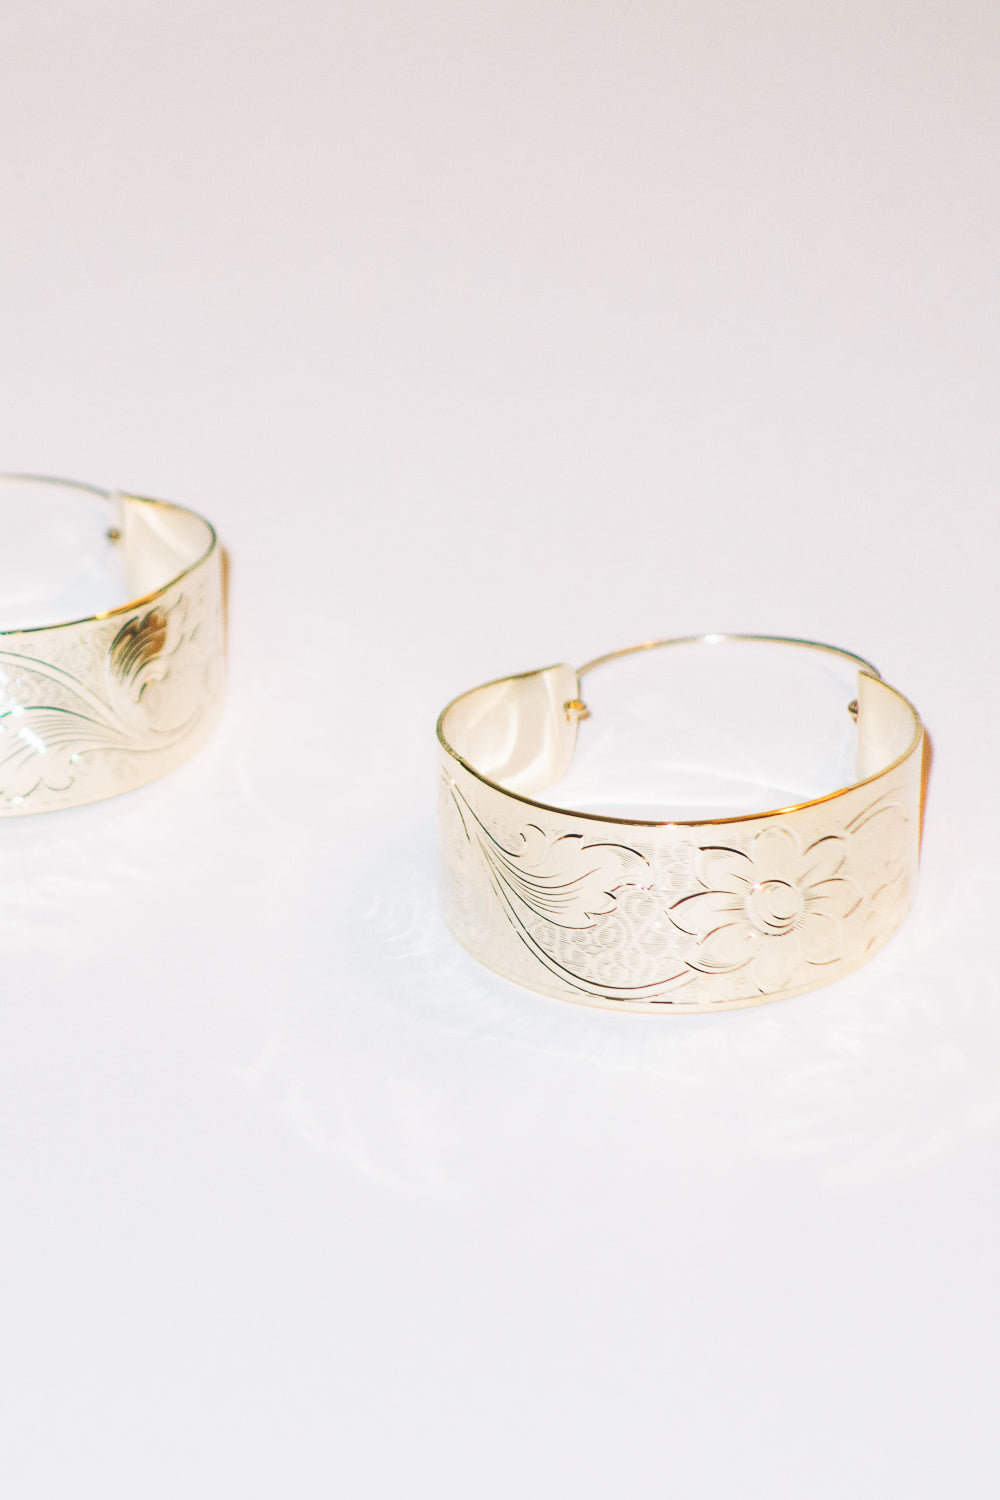 gold basket hoop earrings with flower detail